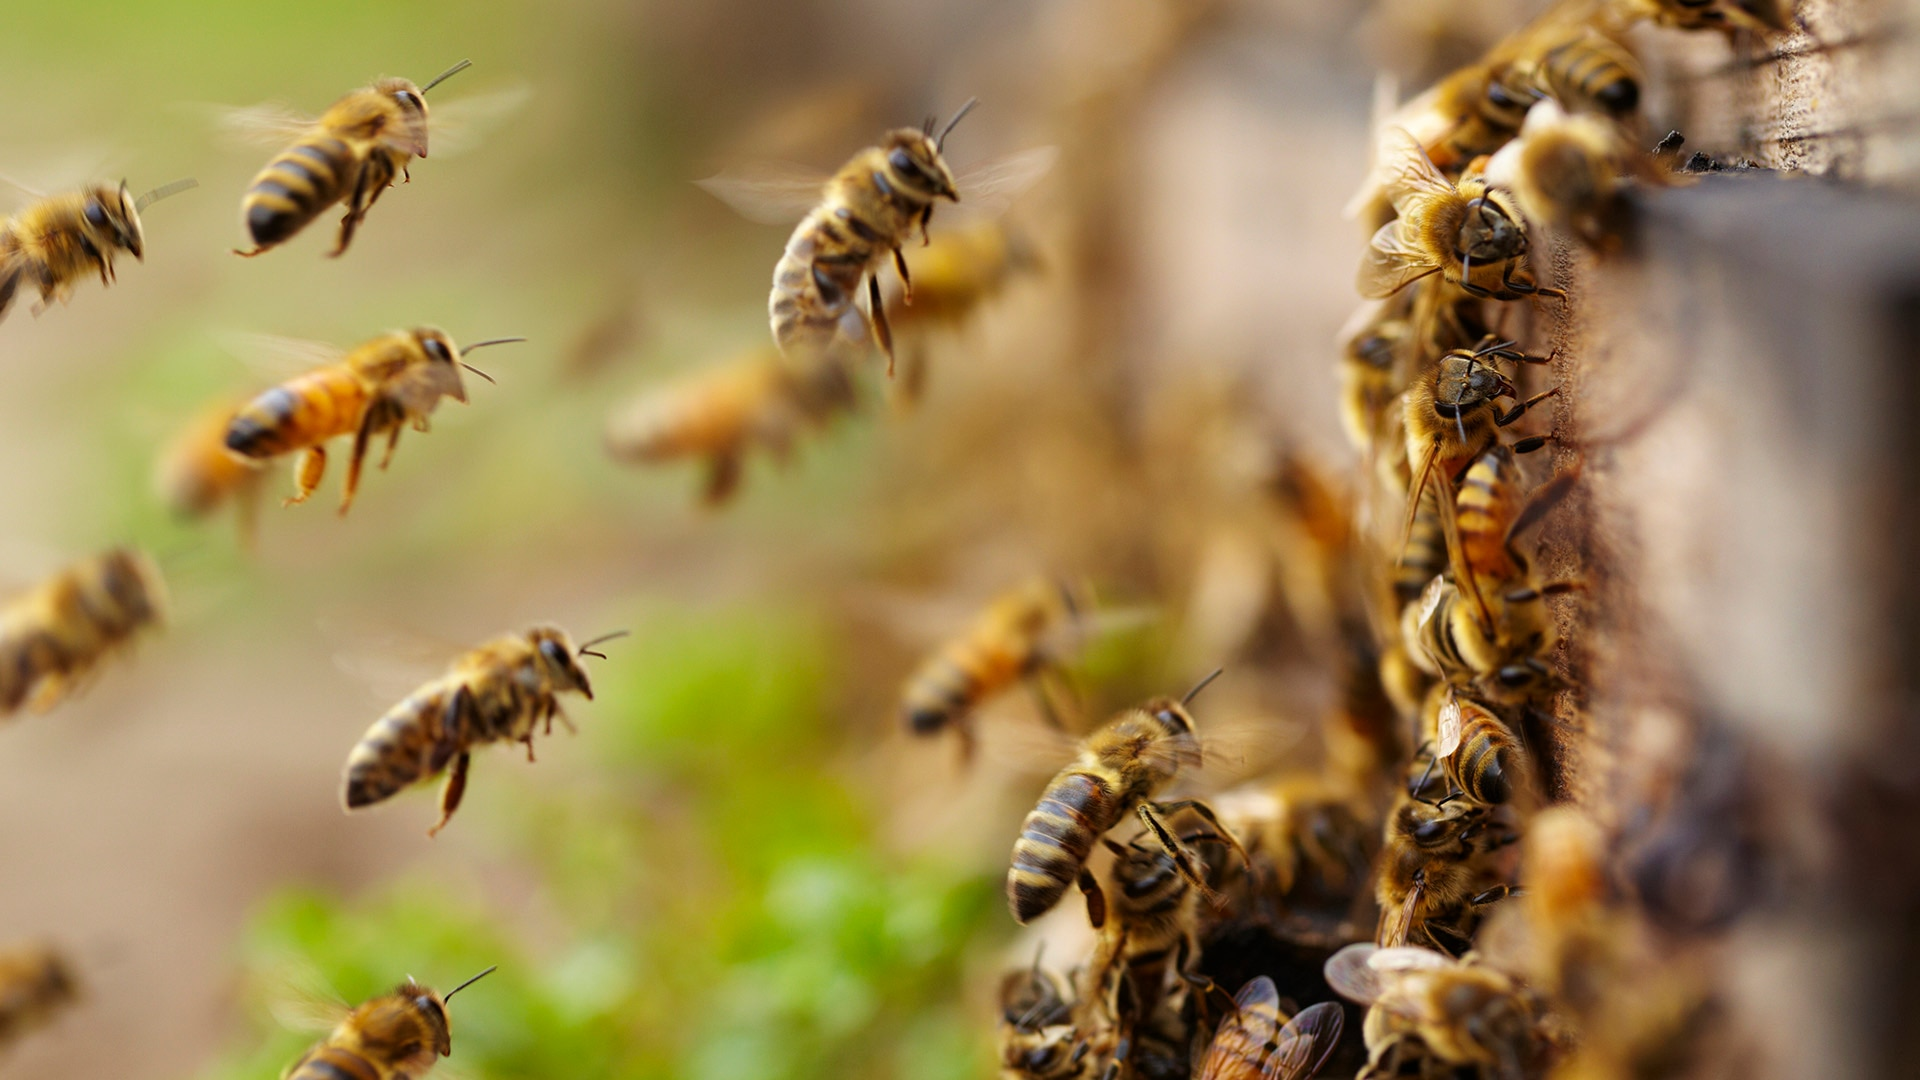 They dance and may even dream: Six things you may not know about honeybees